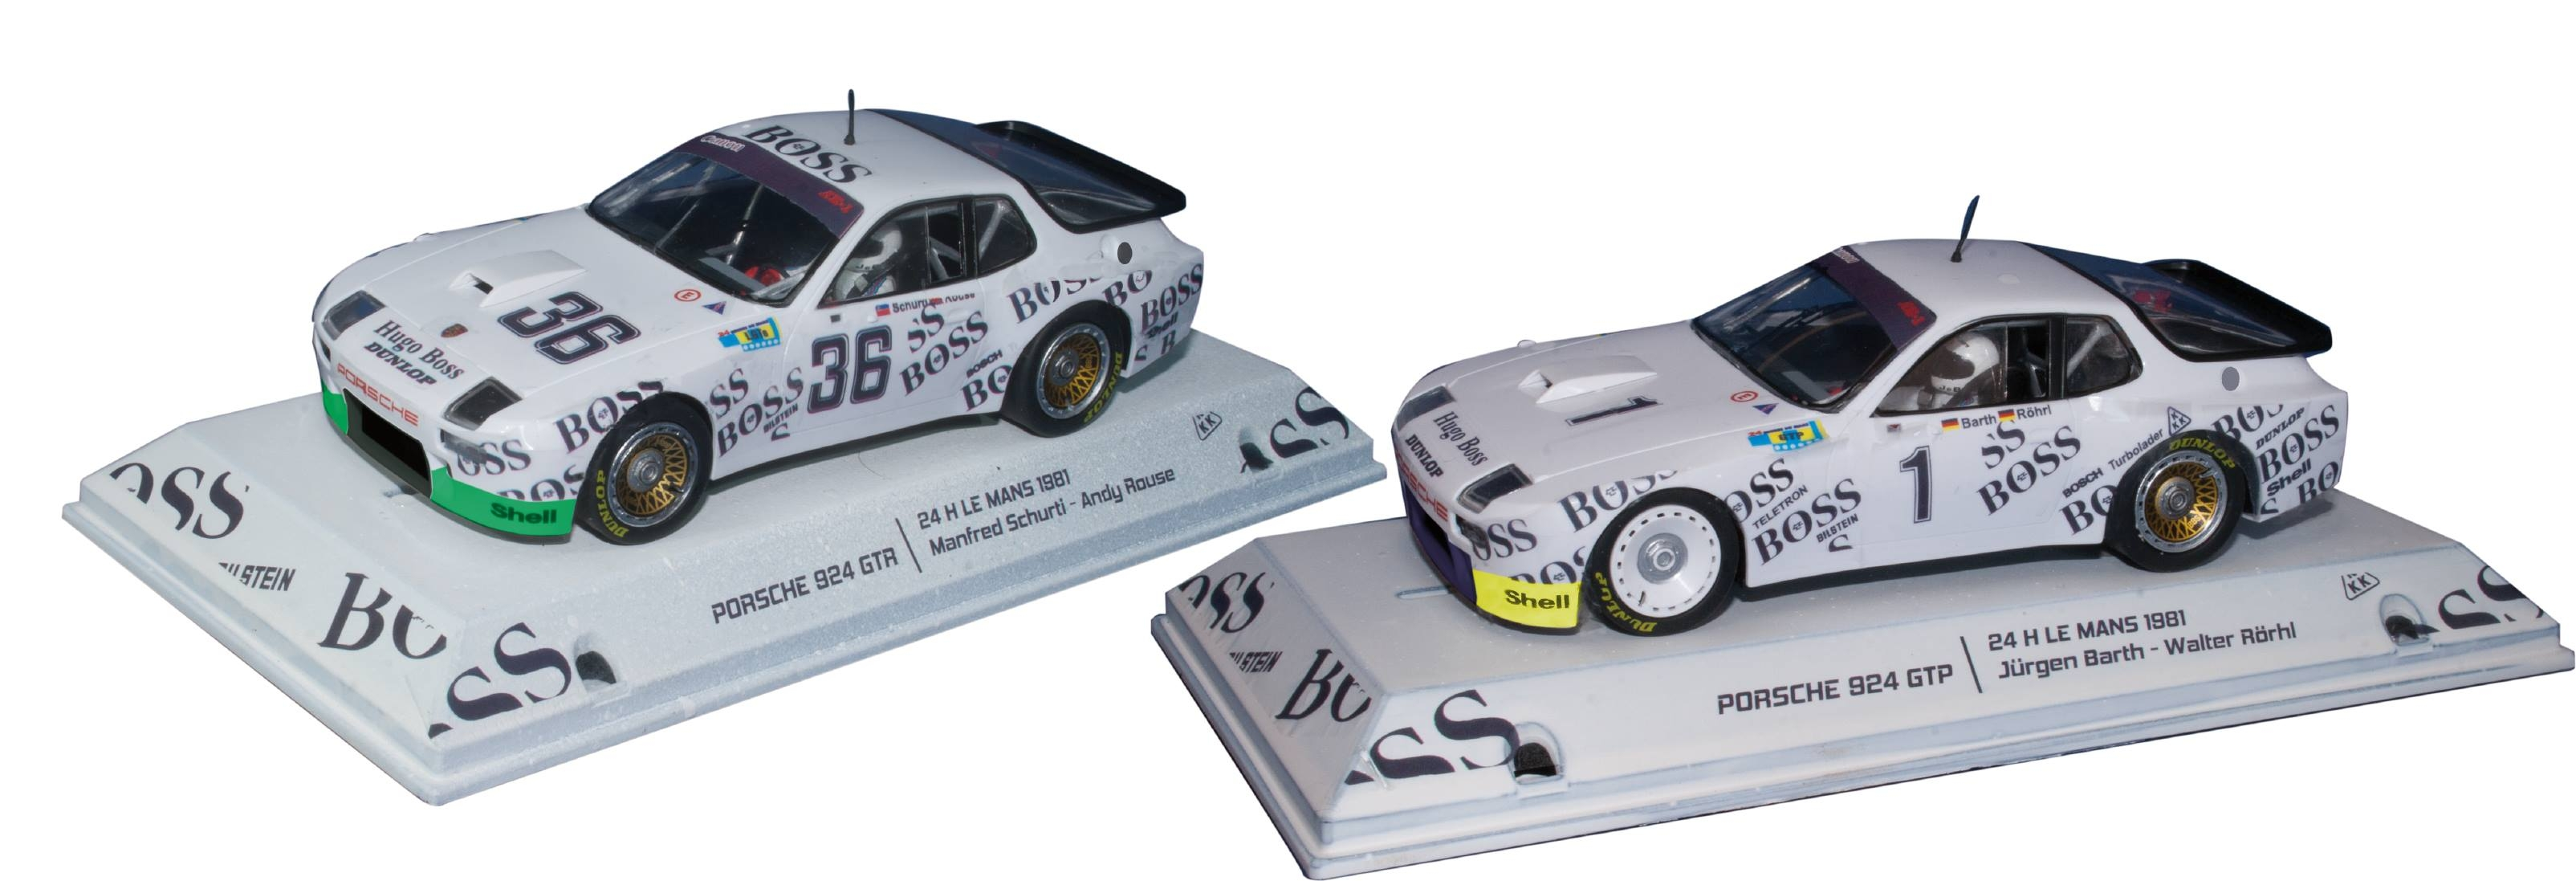 Falcon Slot: le coffret Pack Team Porsche 924 le Mans 1981